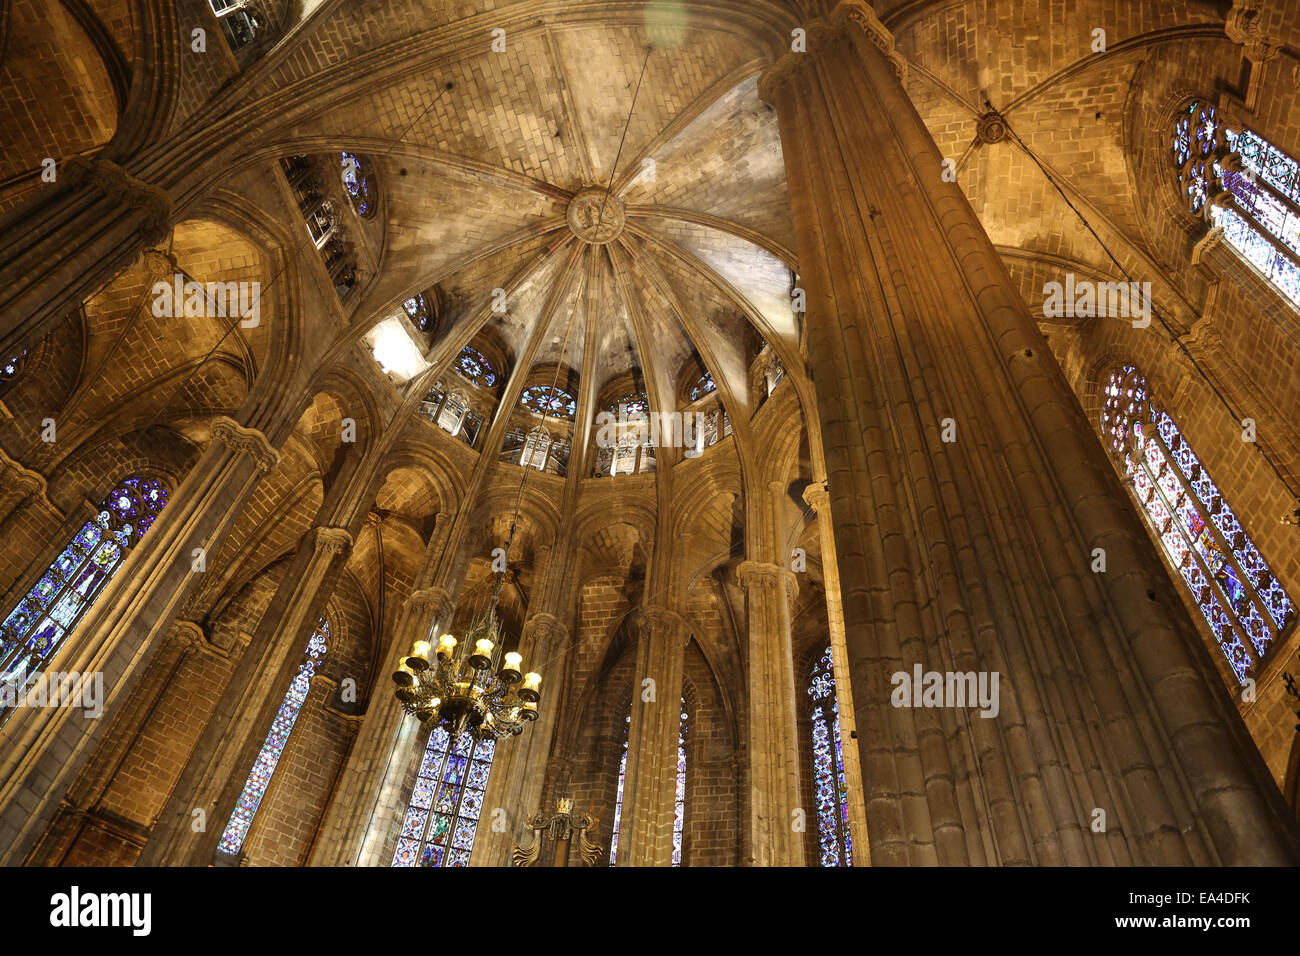 Spain. Catalonia. Barcelona Cathedral. Inside. Apse. 13th century. - Stock Image